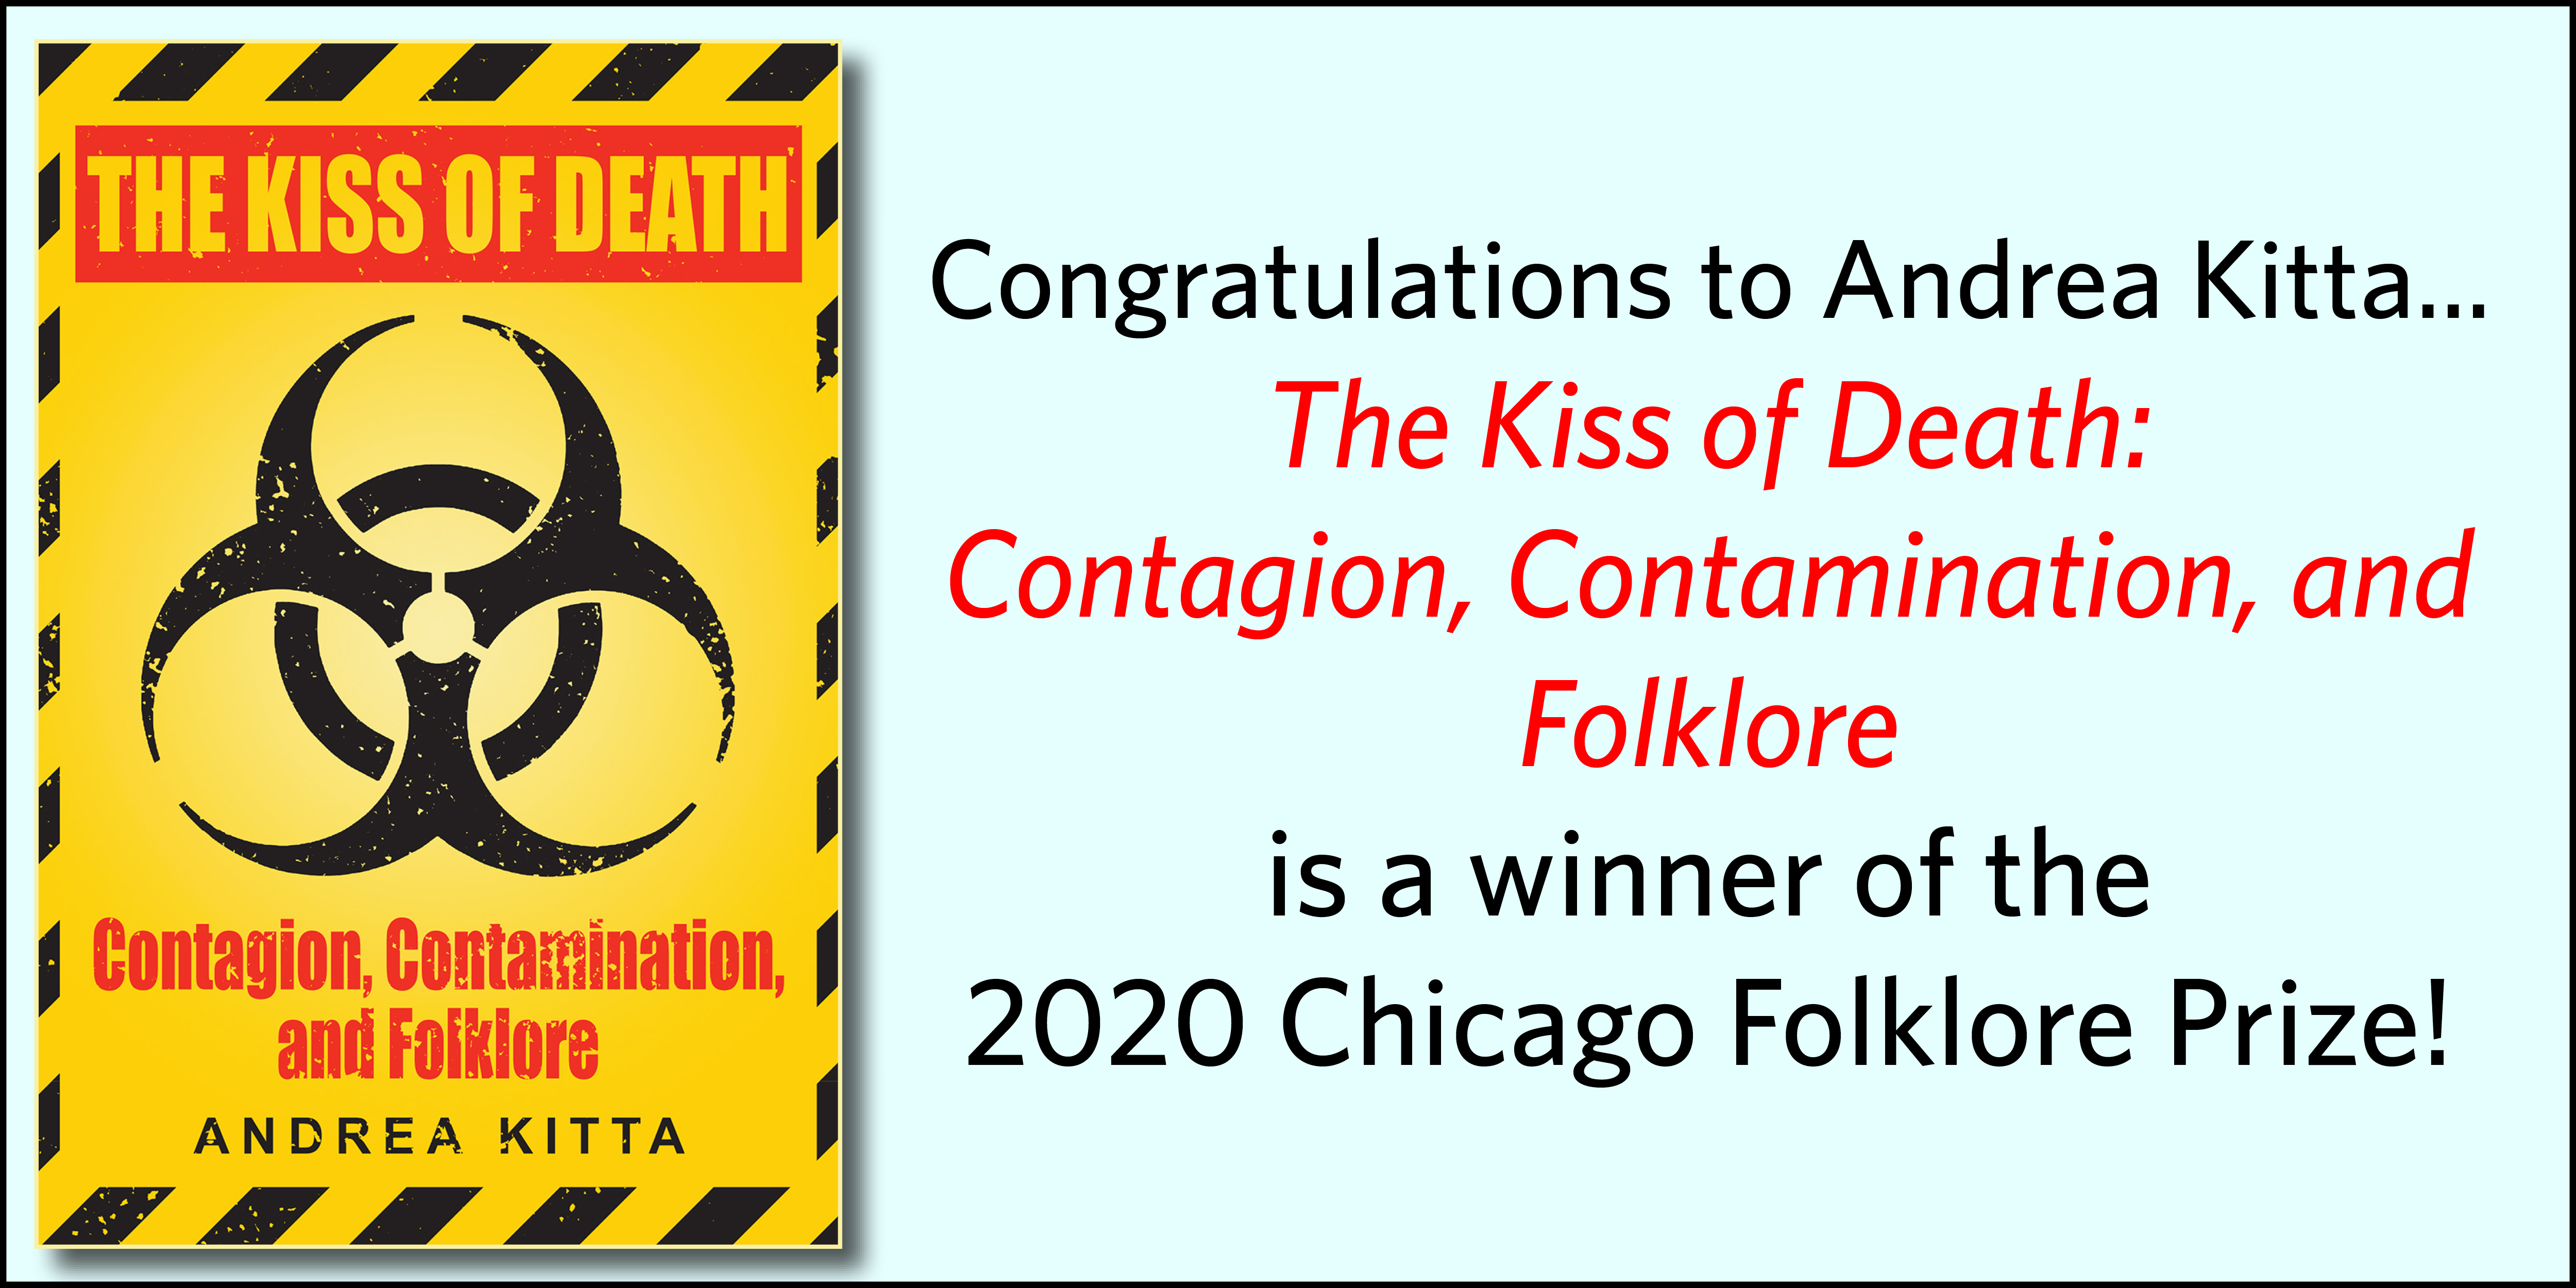 Kiss of Death wins the Chicago Folklore Prize!